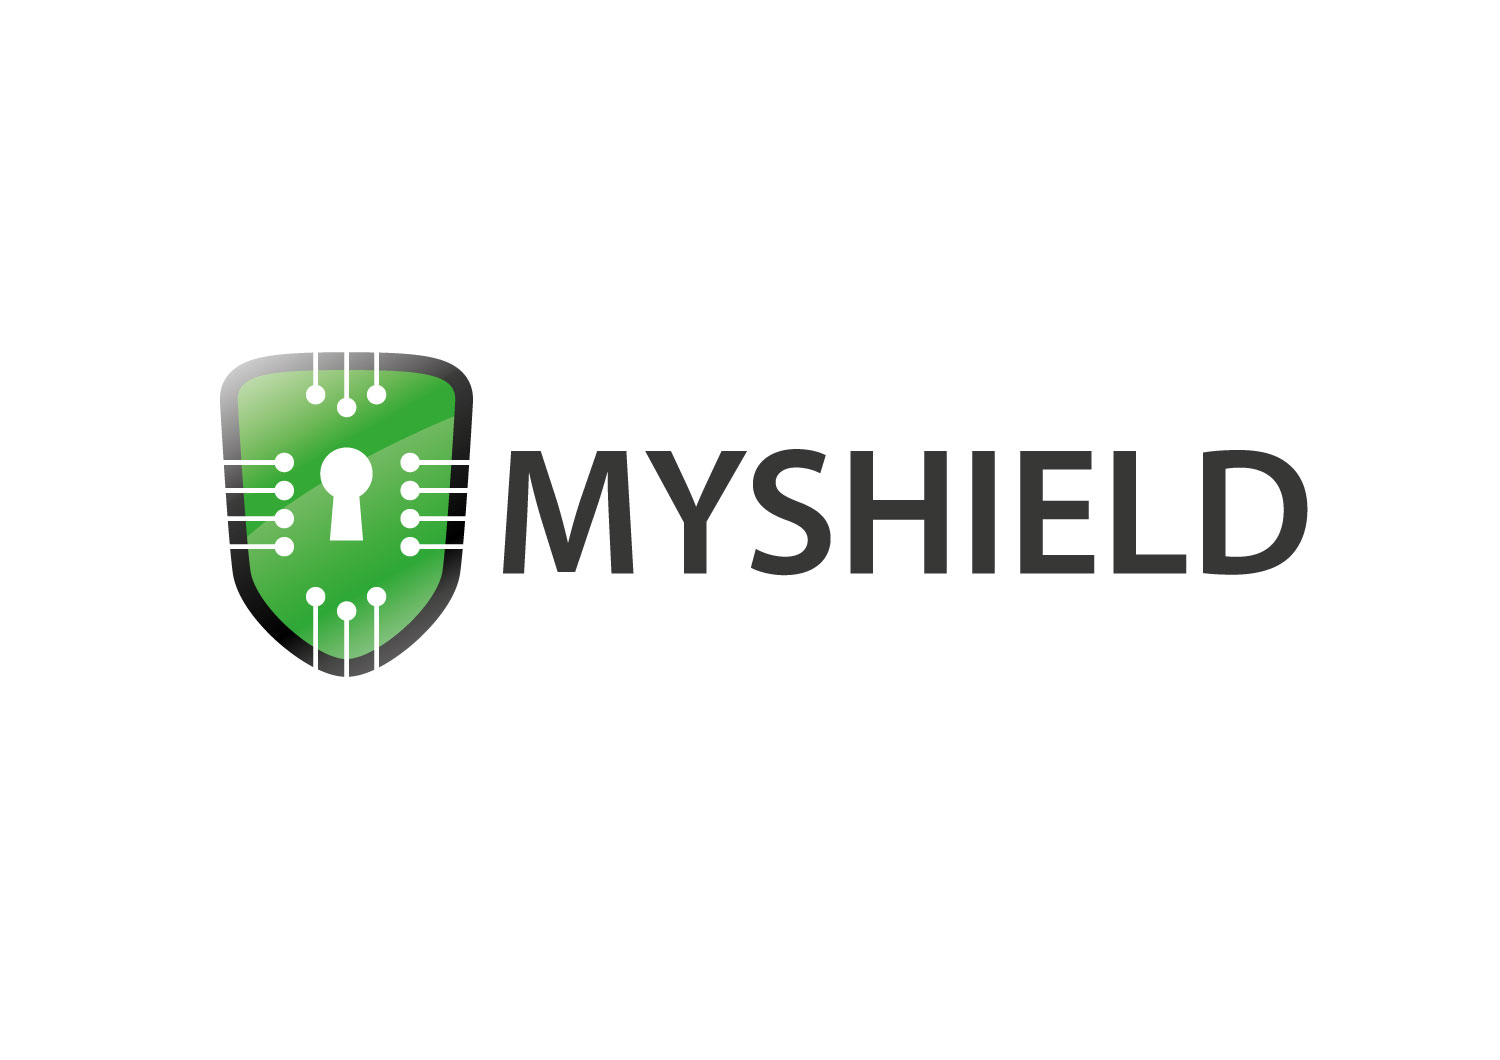 Serious Modern Android Logo Design For Myshield Symbol Text